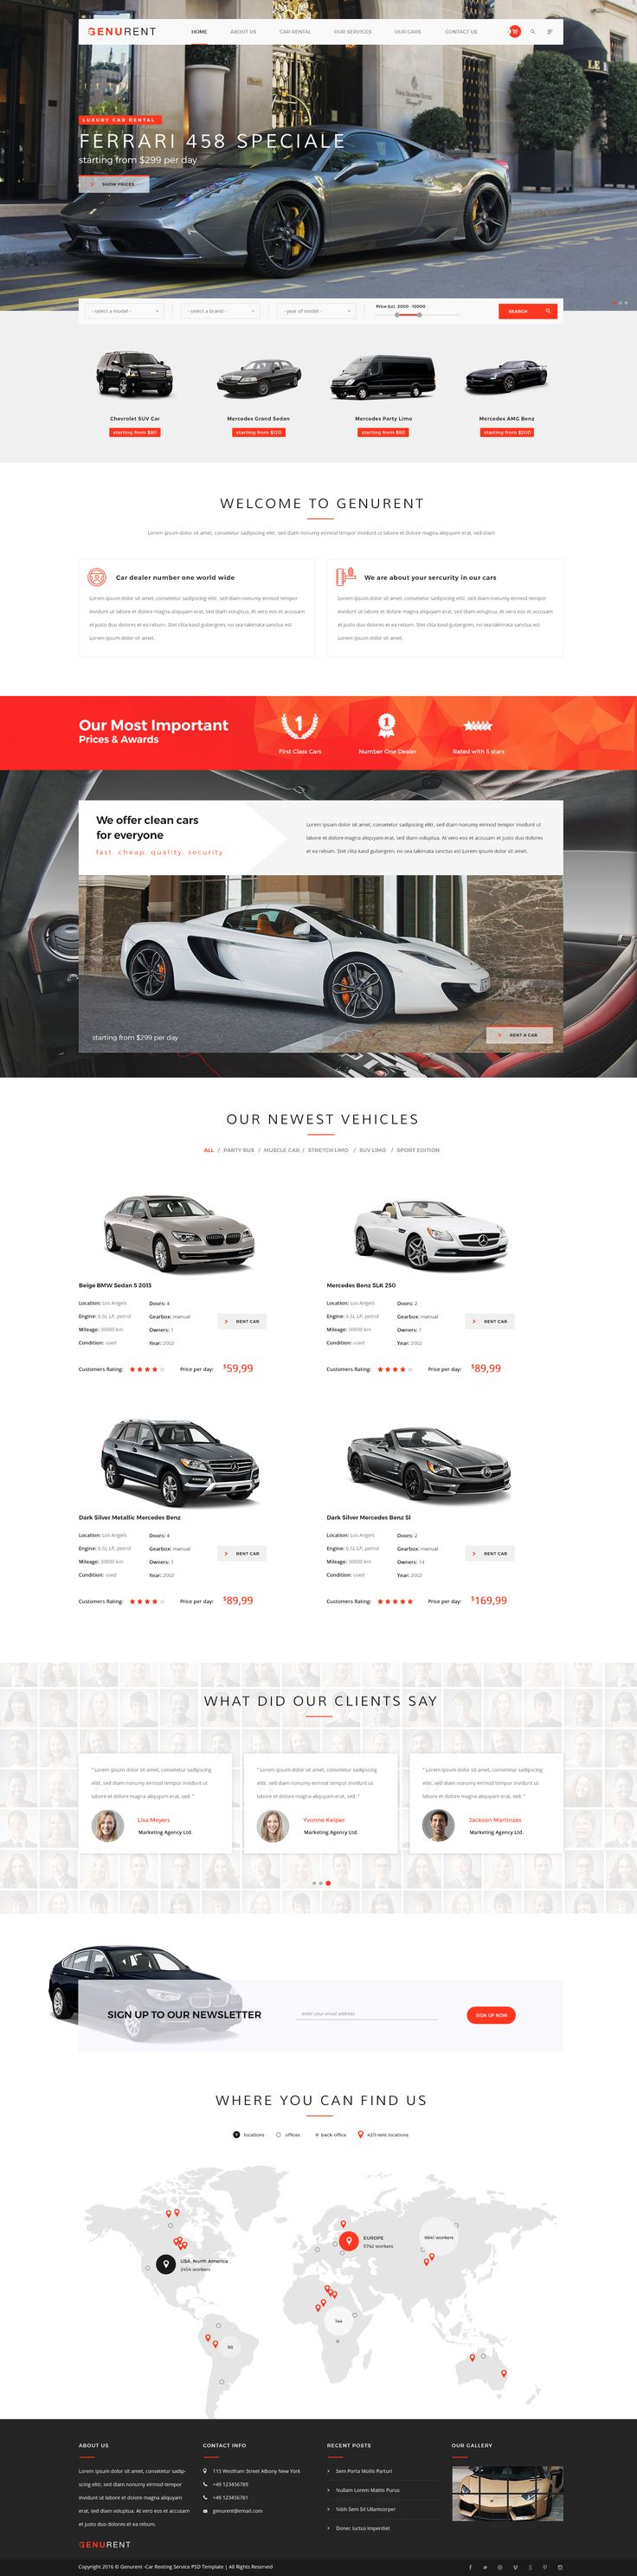 Overview Genurent is a simple car dealer and rental service PSD template. This template is a highly suitable template for companies that offer rental services as well as other car related ...